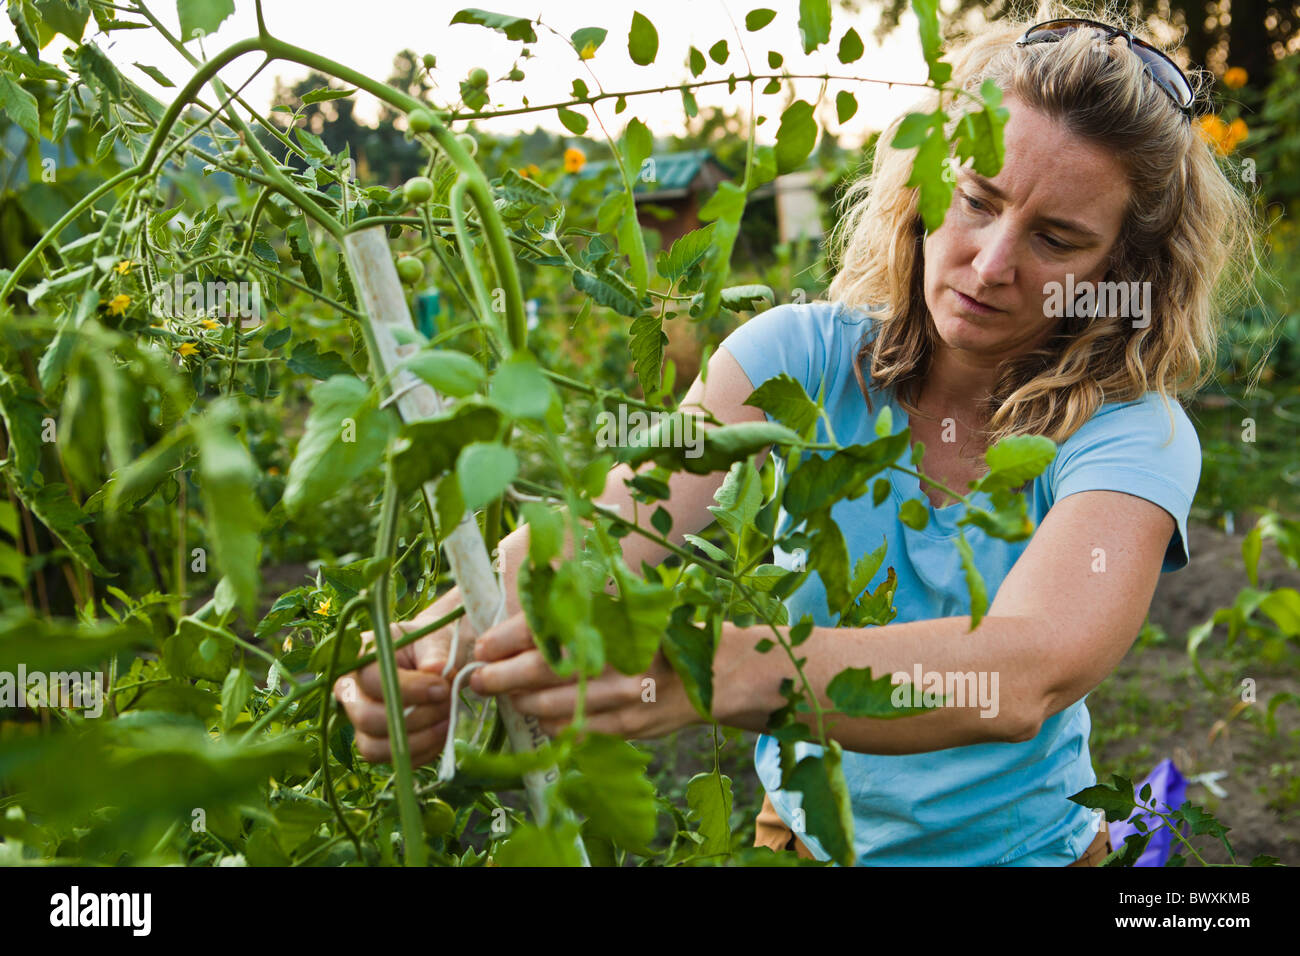 A woman working in her vegetable garden. - Stock Image